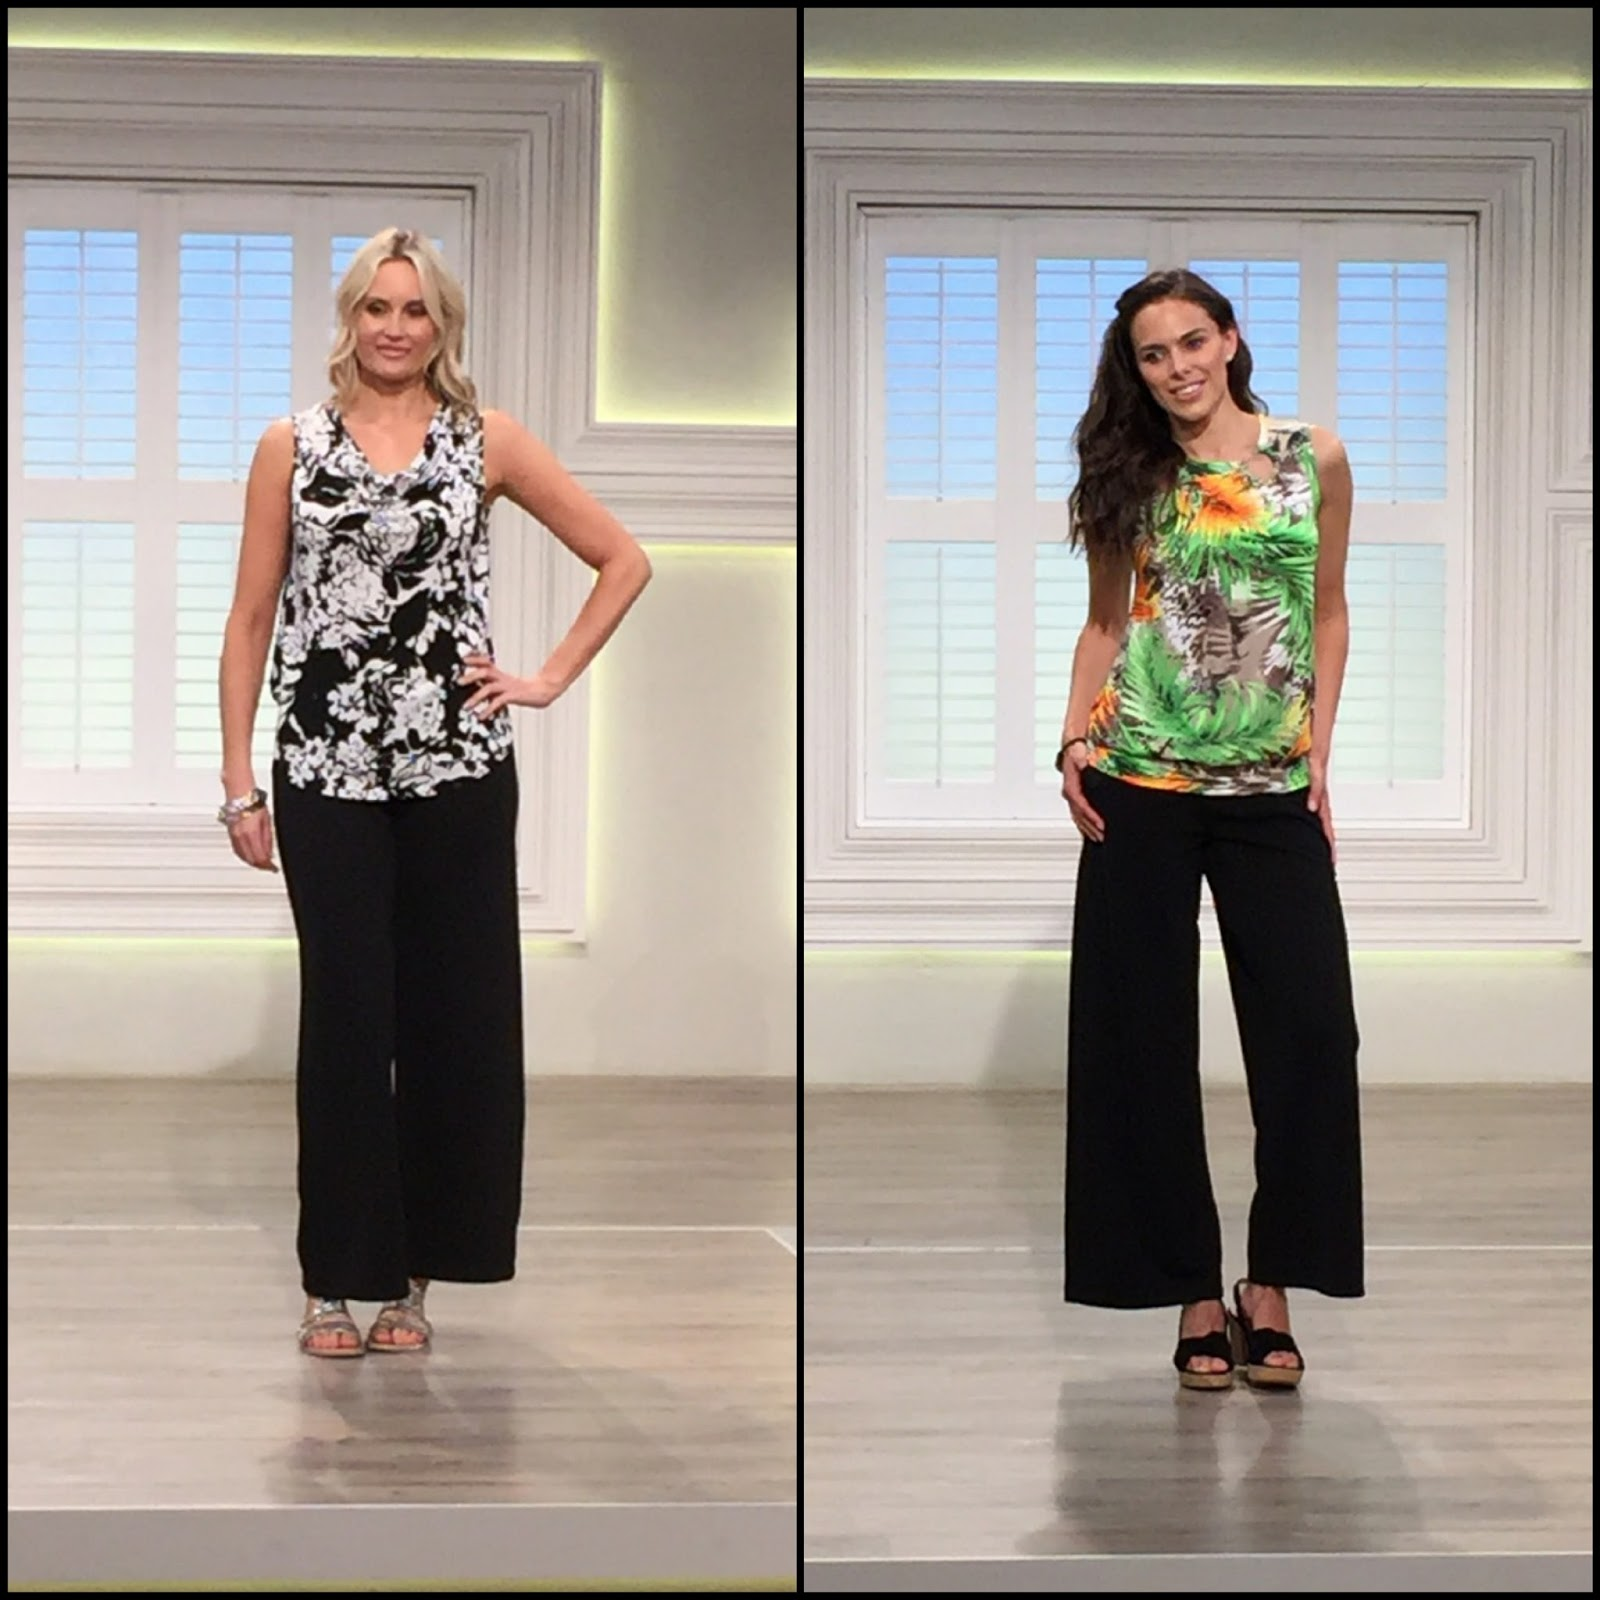 Nv nick verreosqvc uk and qvc italy may 2016 nick verreos model in nv nick verreos qvc uk tab sleeve snap front jumpsuit ccuart Gallery